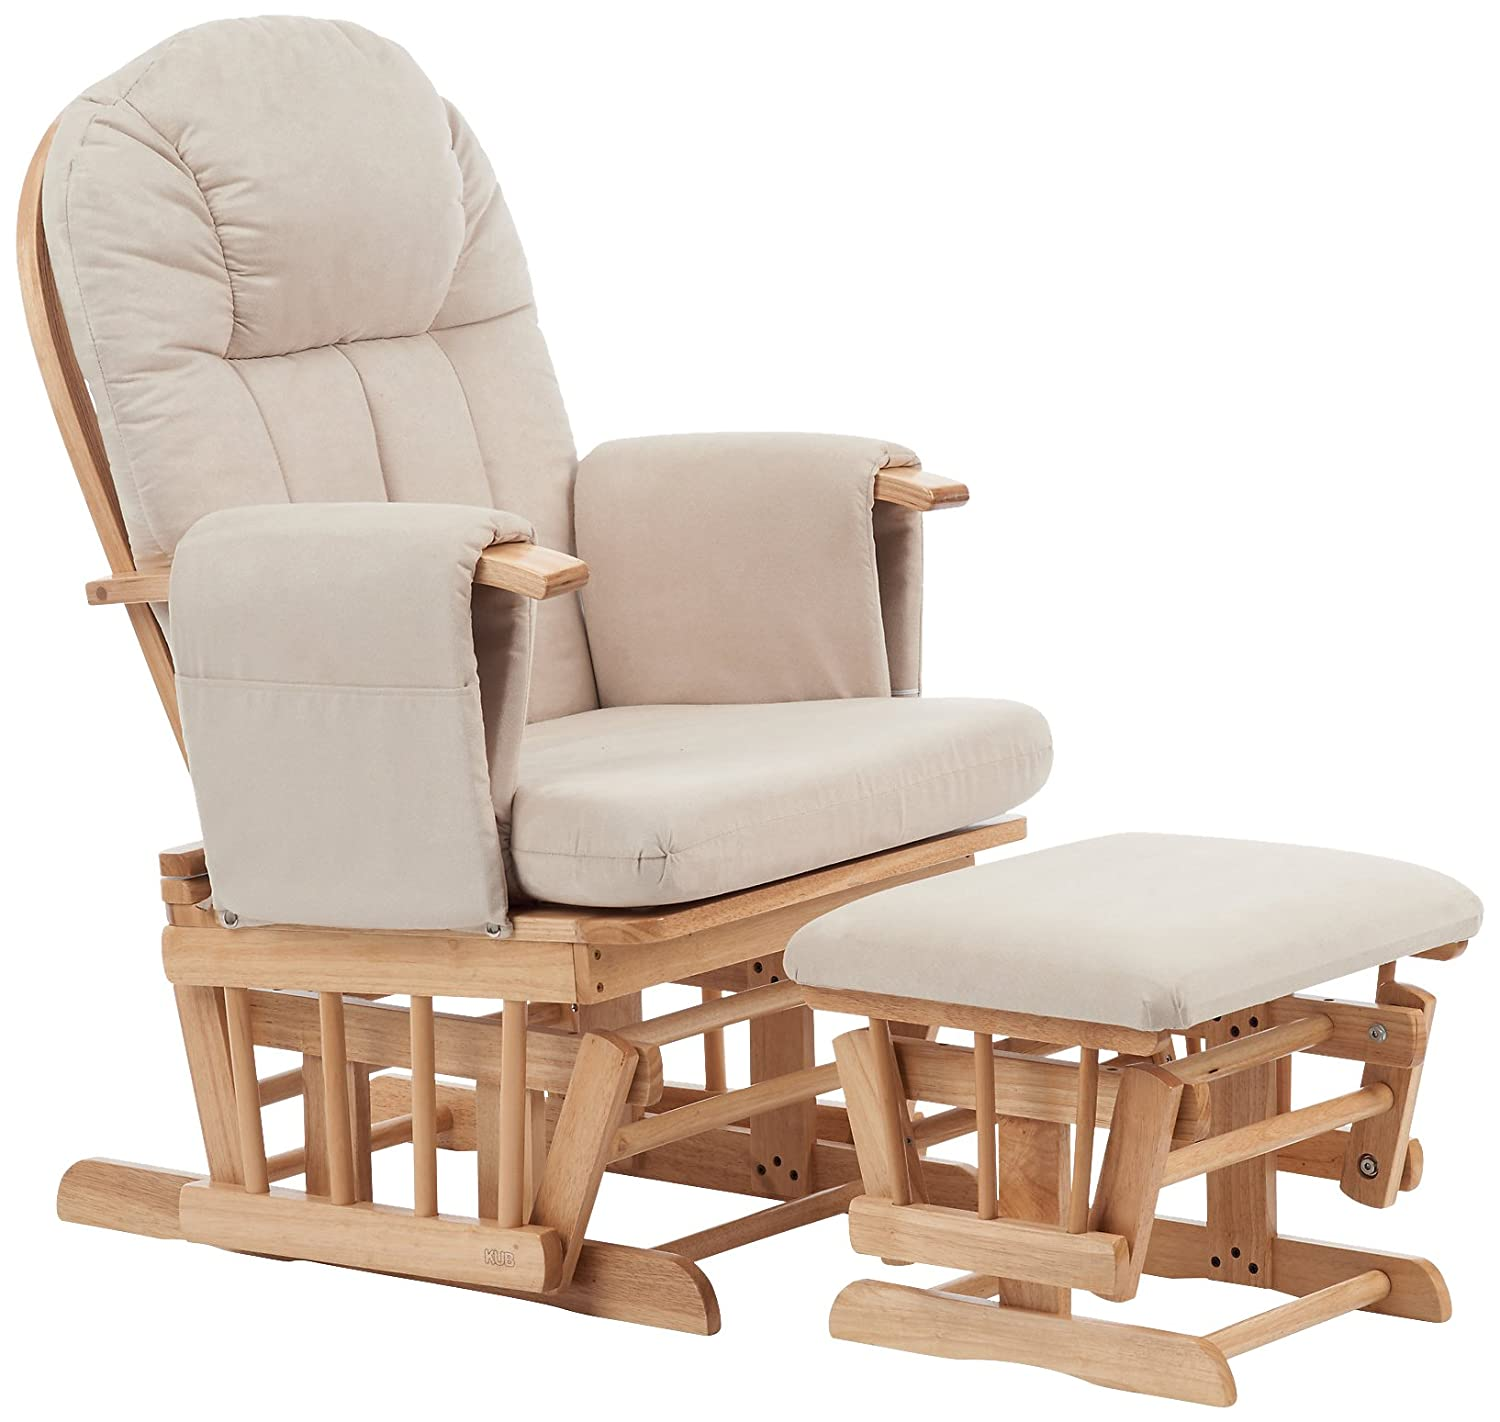 Mothercare Natural Reclining Glider Chair with Cushion, Beige A3457